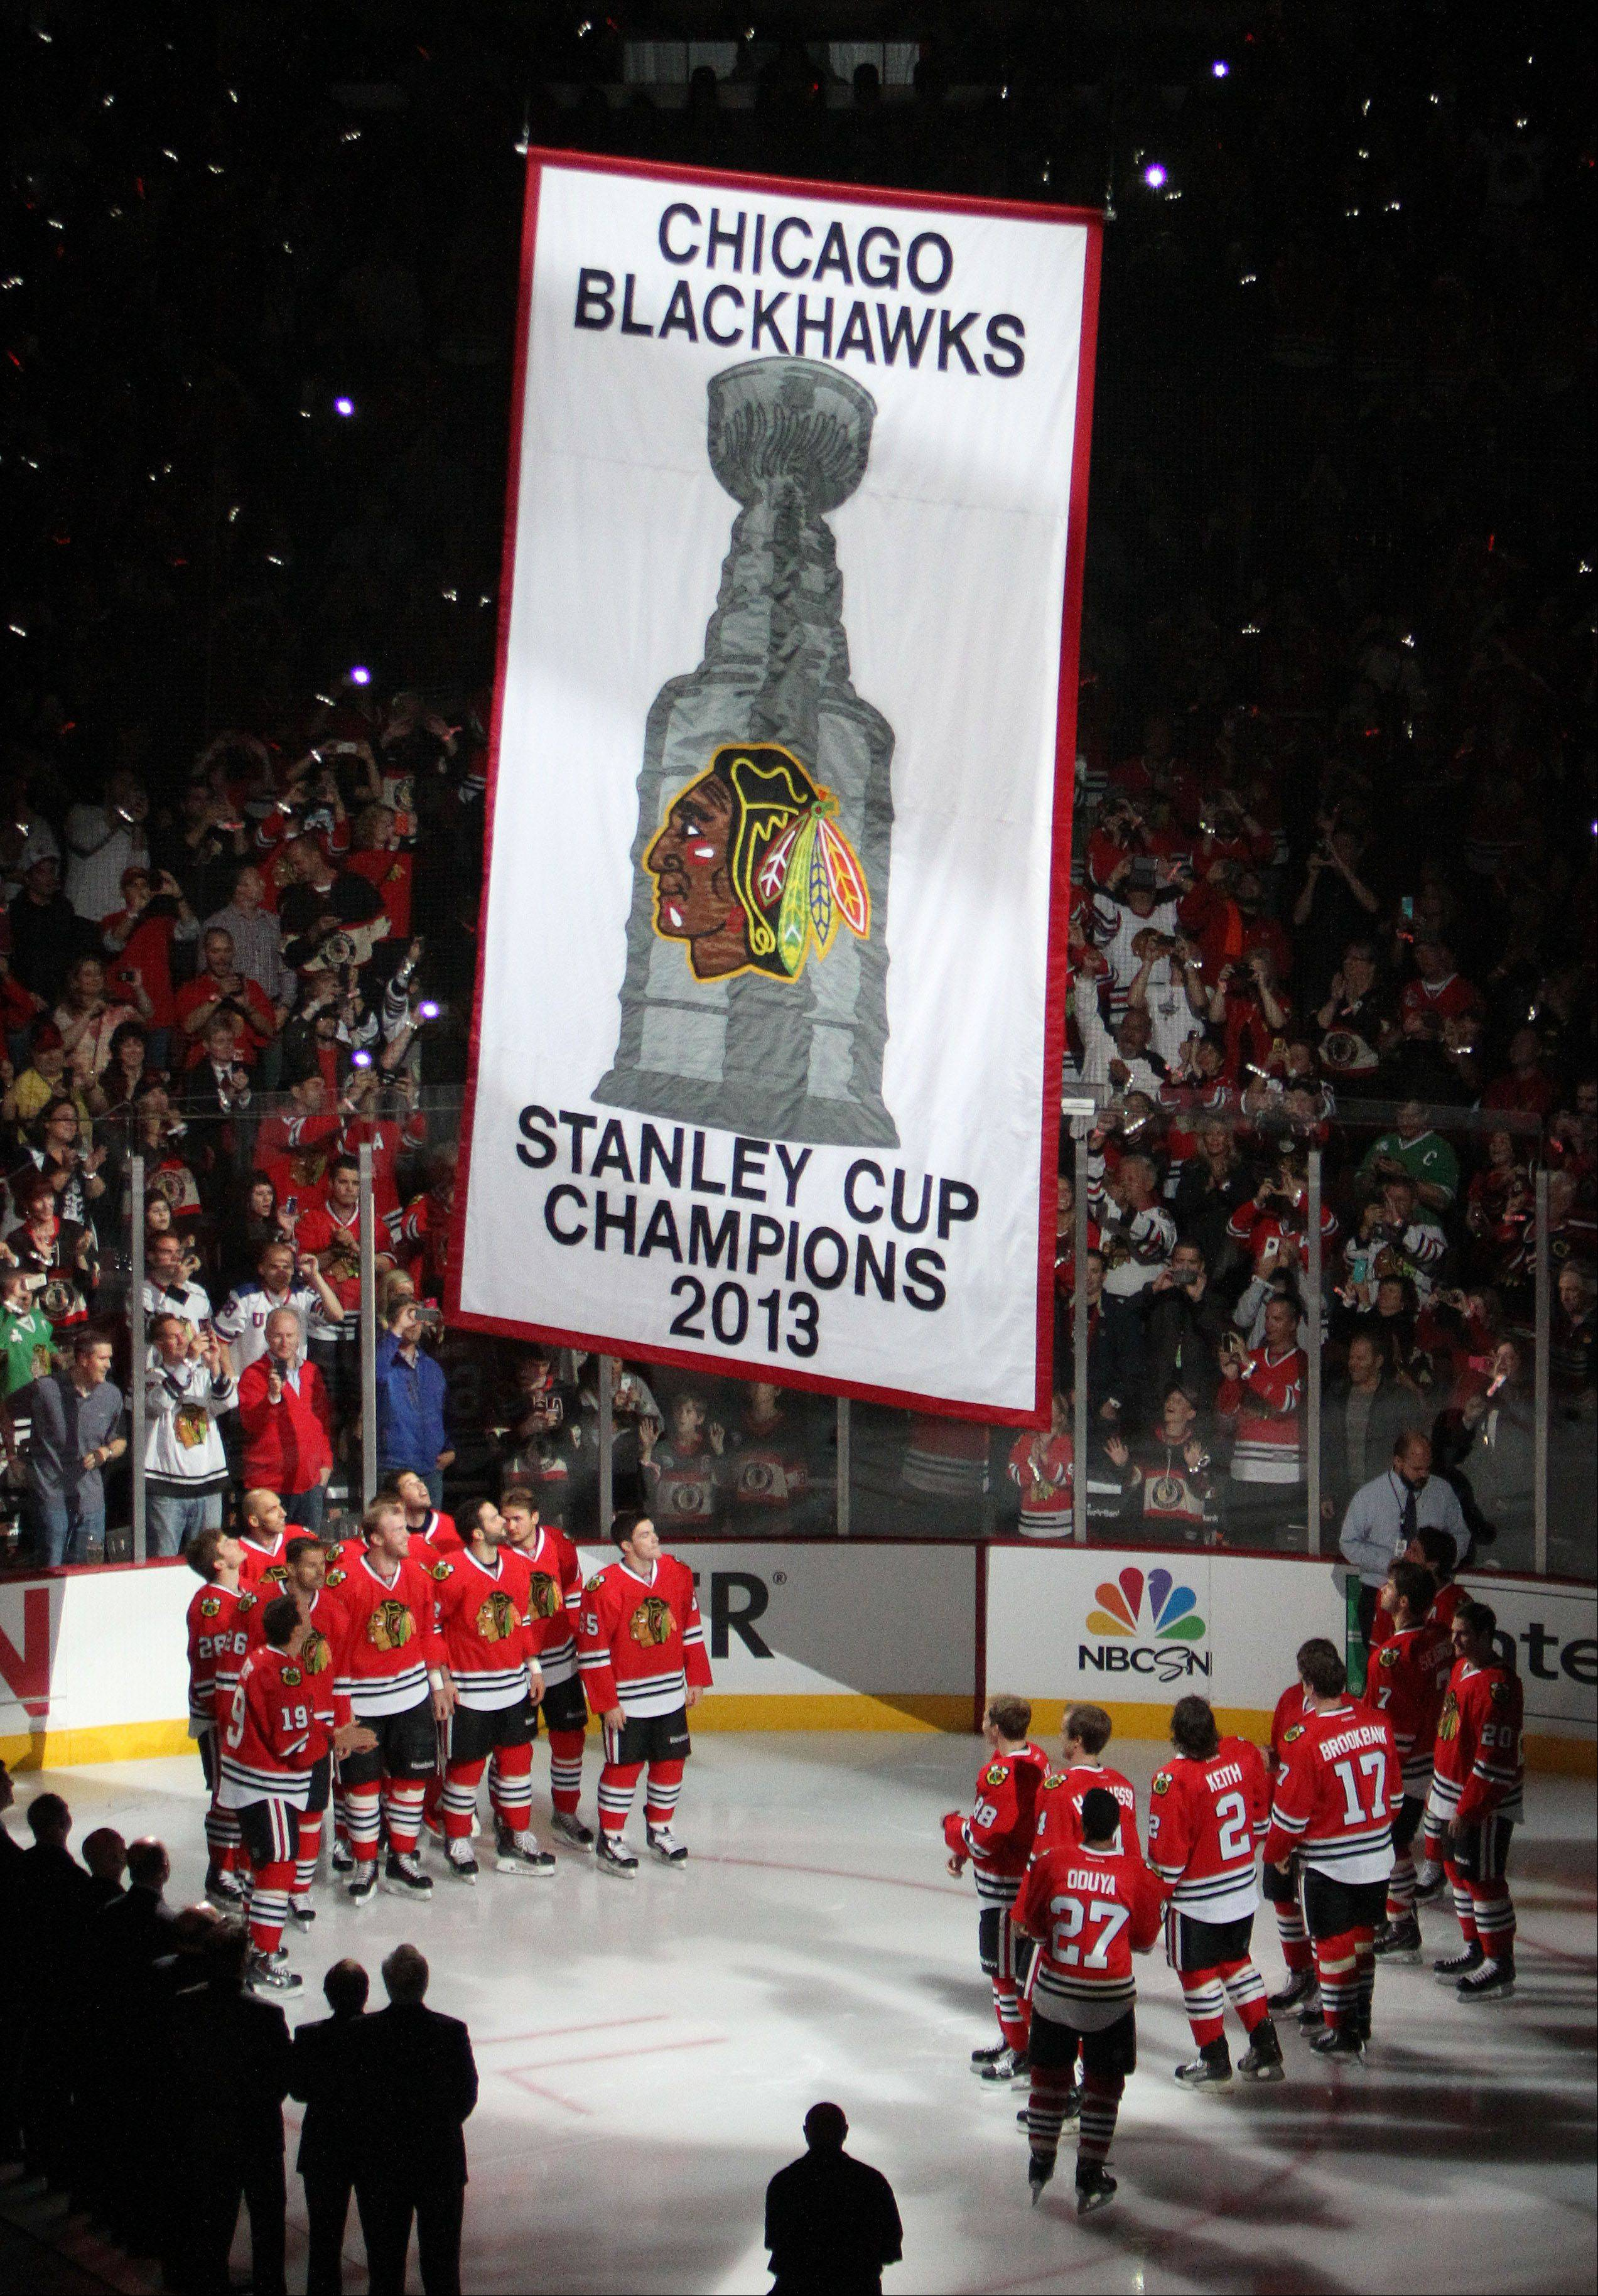 Nobody raises a banner better than Blackhawks